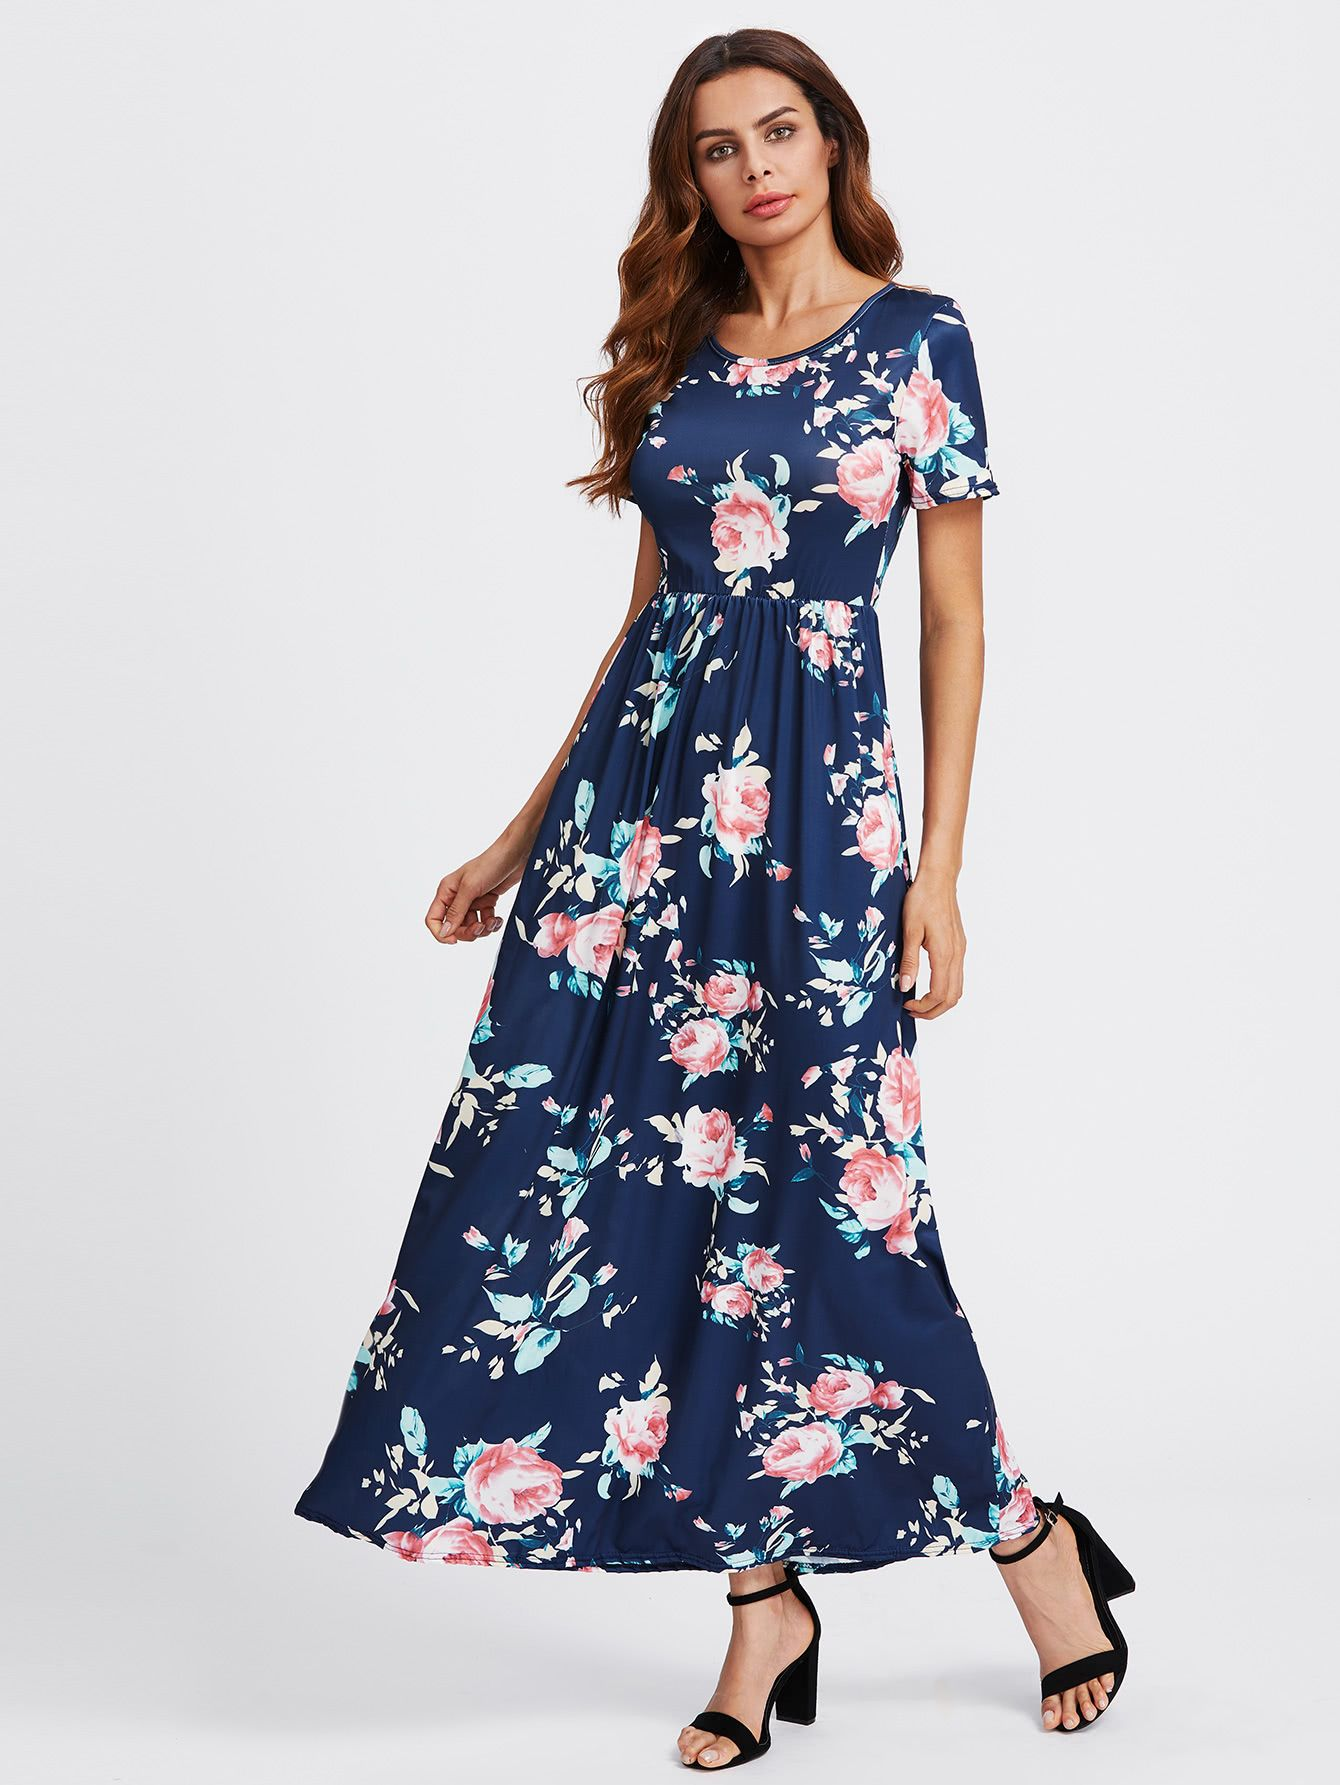 dff0d64a83 Shop Flower Print Maxi Dress online. SheIn offers Flower Print Maxi Dress &  more to fit your fashionable needs.